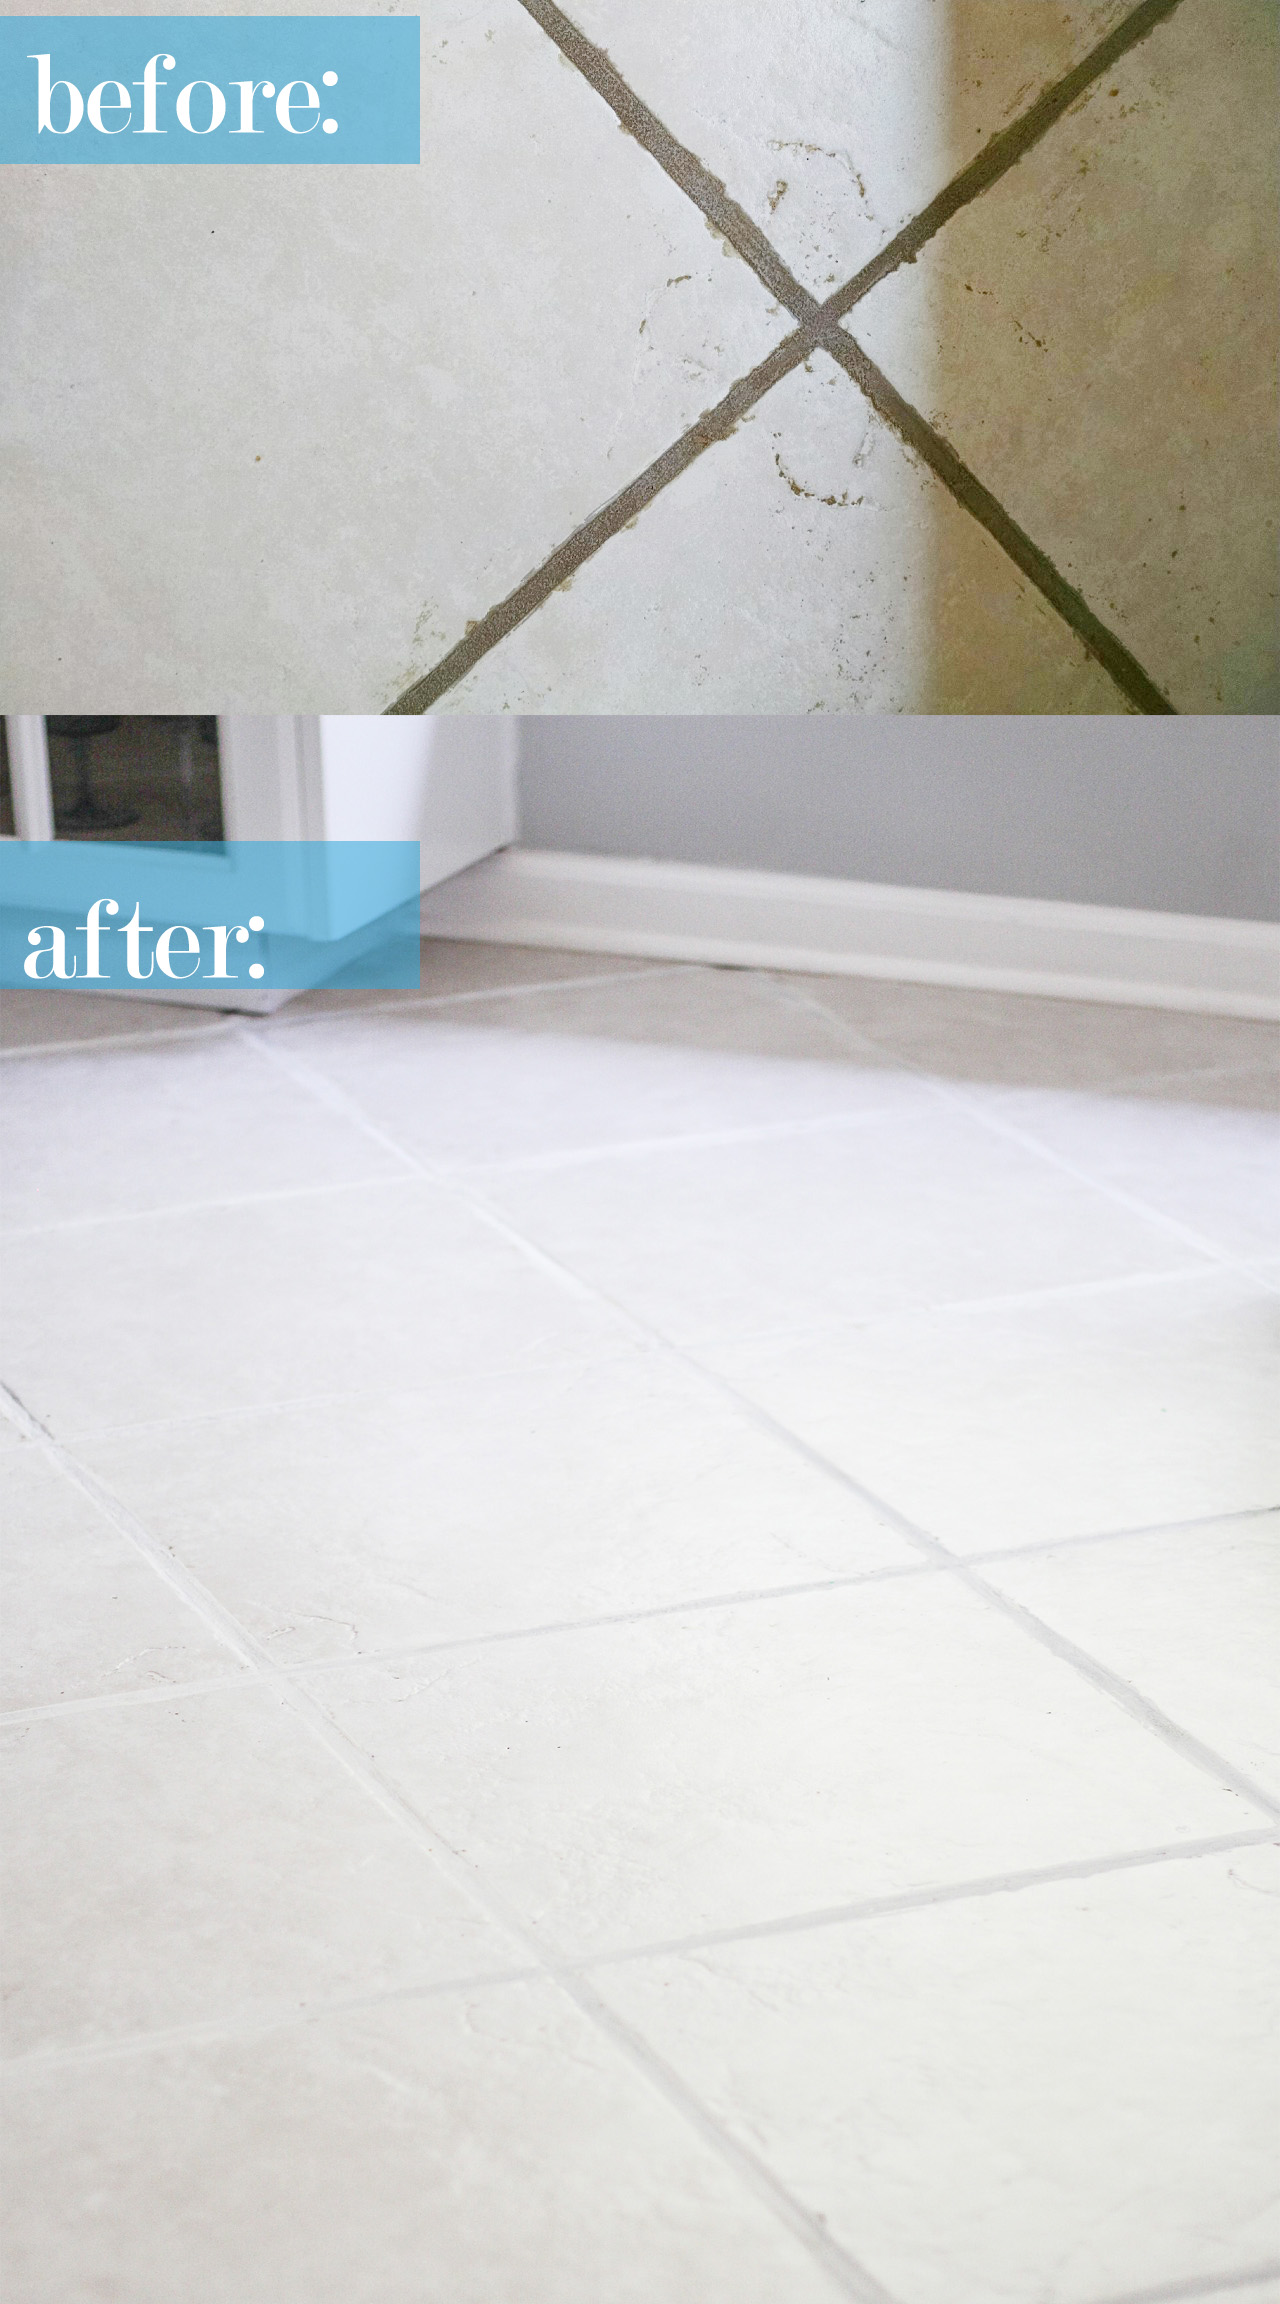 How to wash the tile